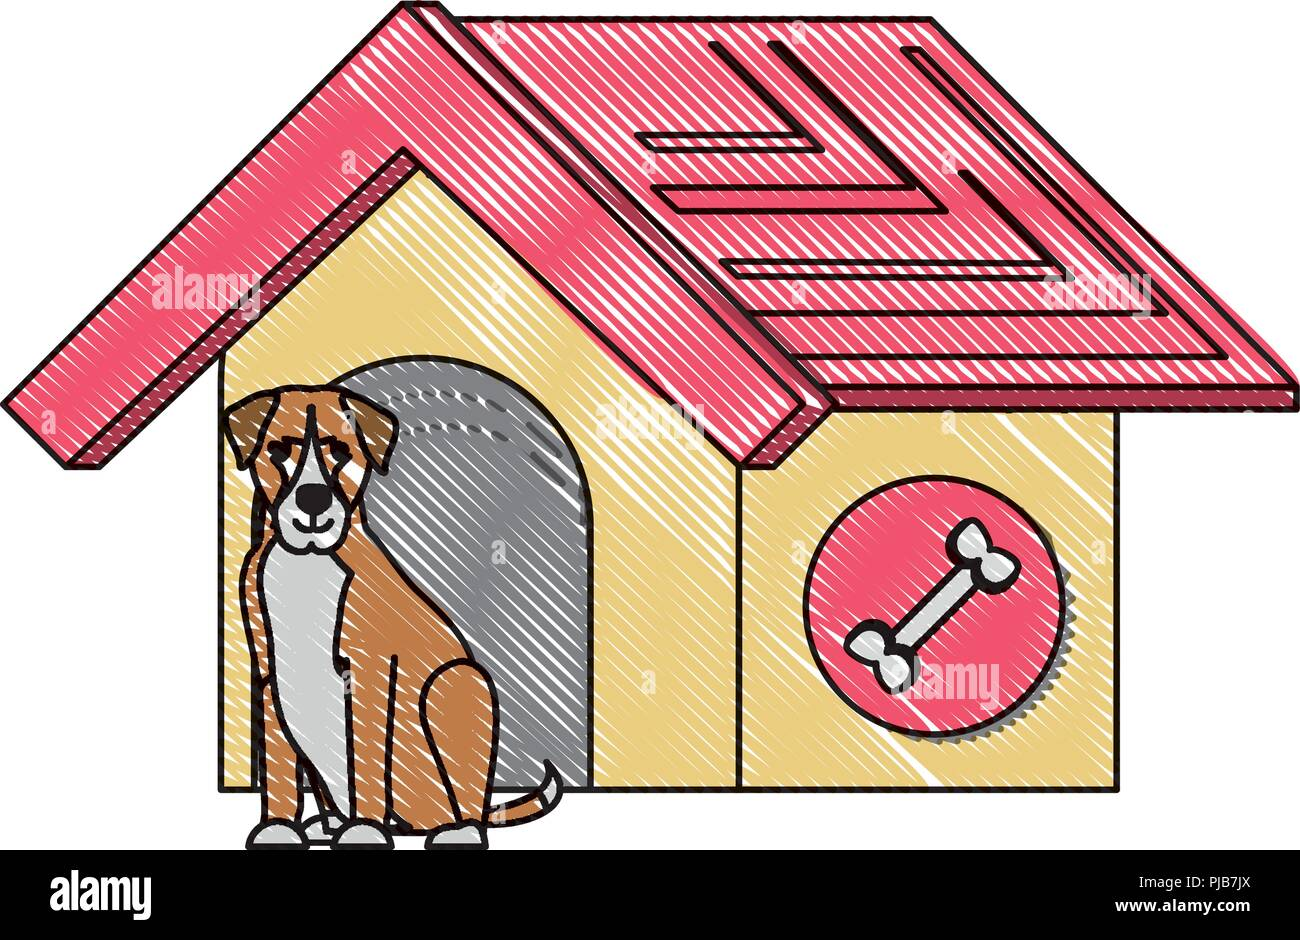 pet house with cute doberman dog over white background, vector illustration - Stock Image